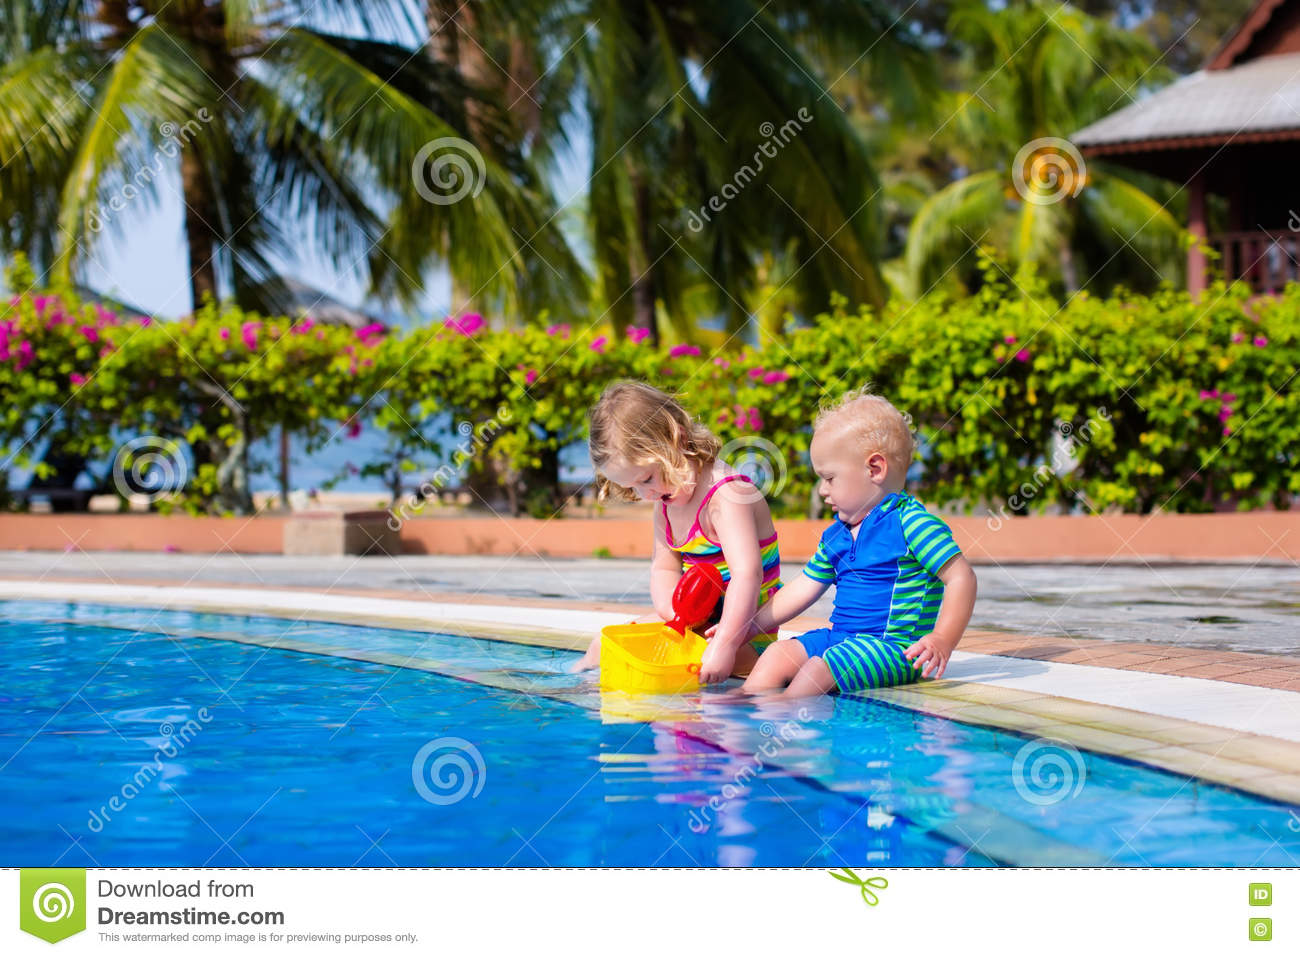 Little Kids In Swimming Pool Stock Photo - Image: 72024796